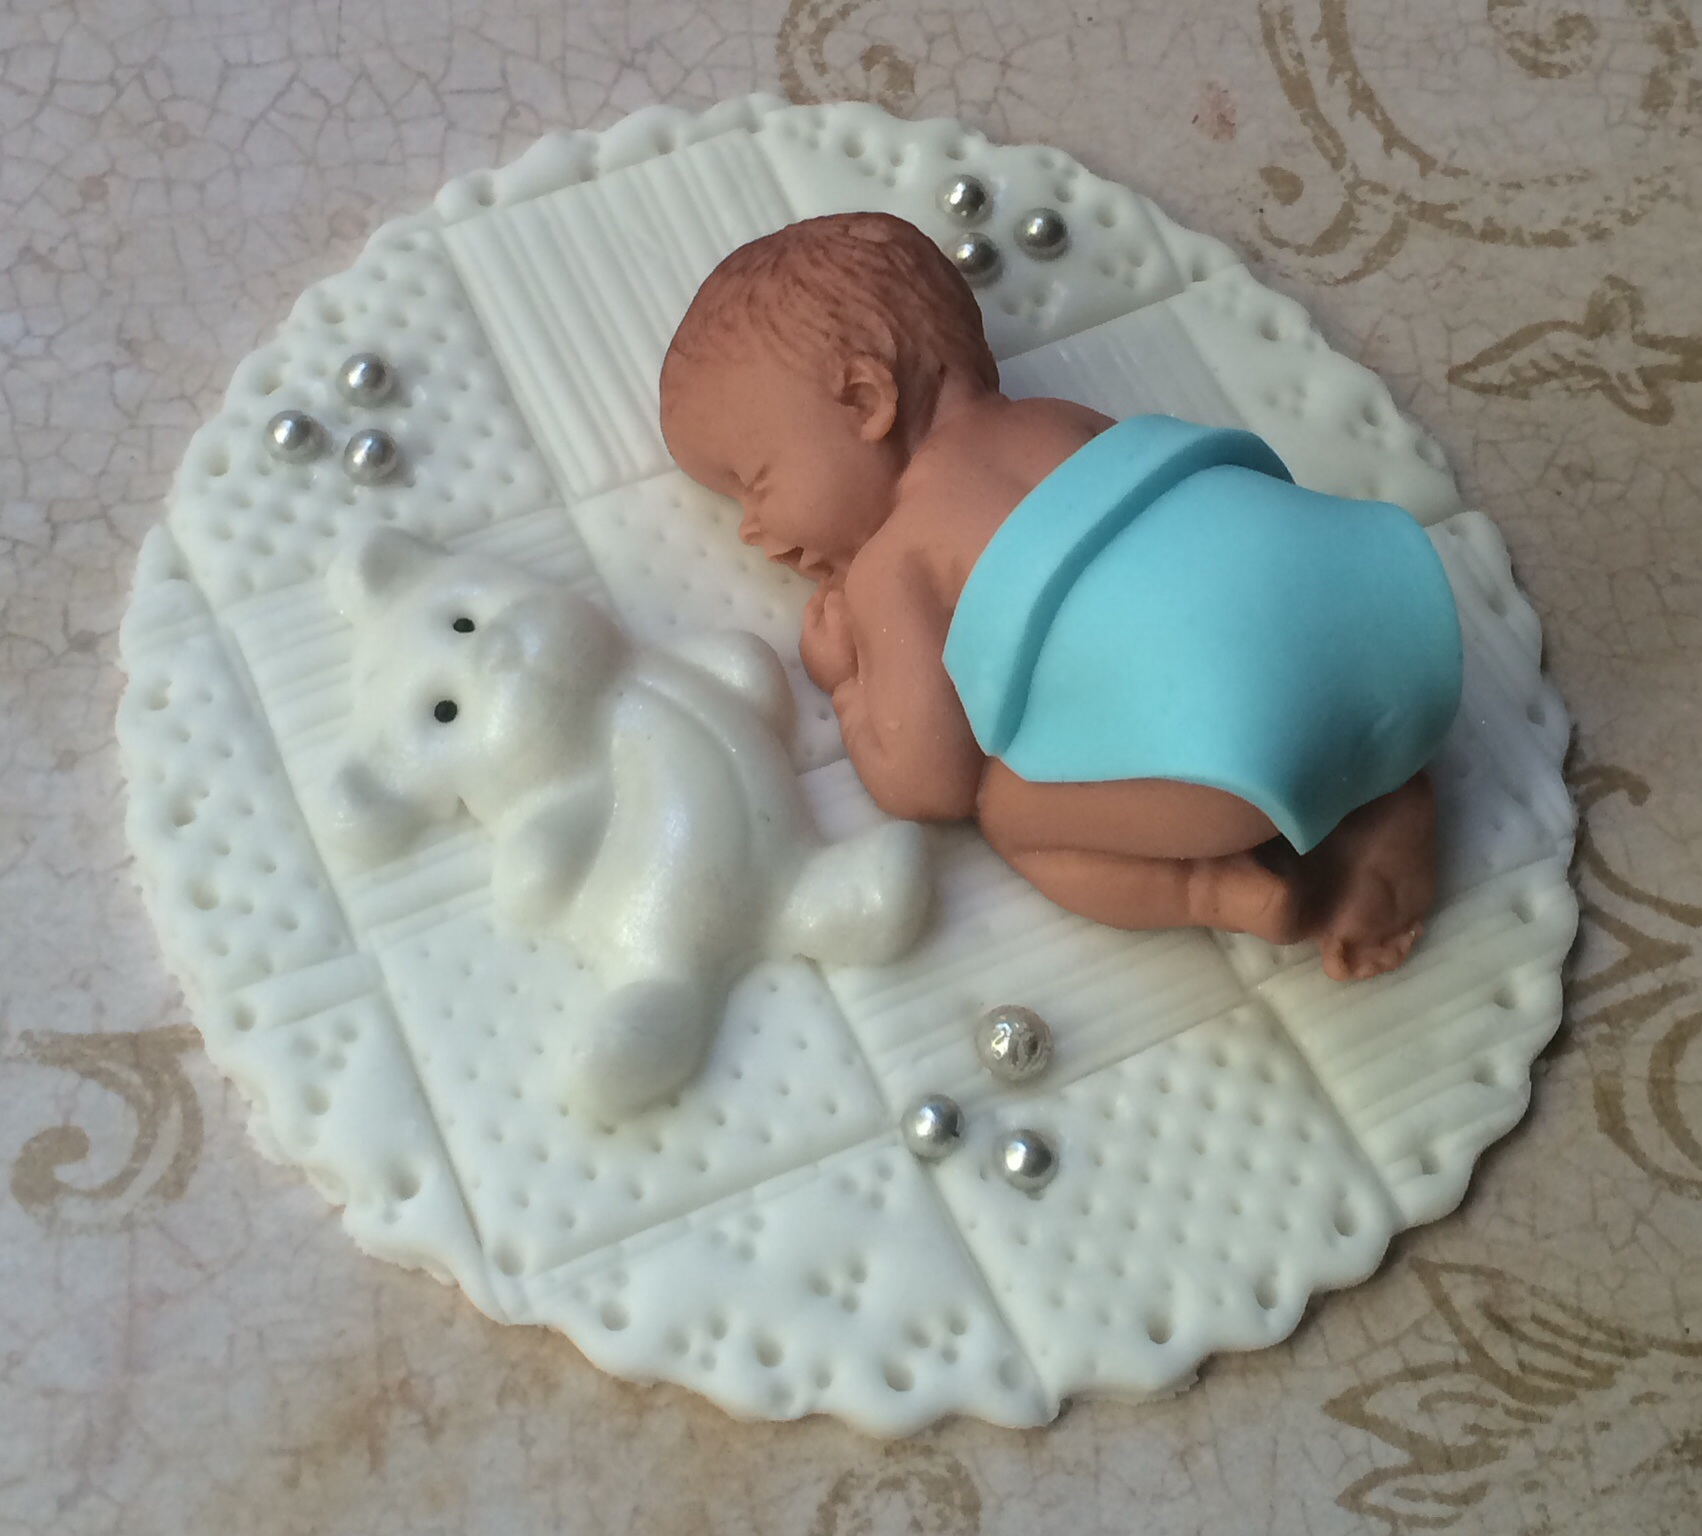 Boys Baby Shower Cake: BABY BOY SHOWER FONDANT CAKE TOPPER BABY SHOWER